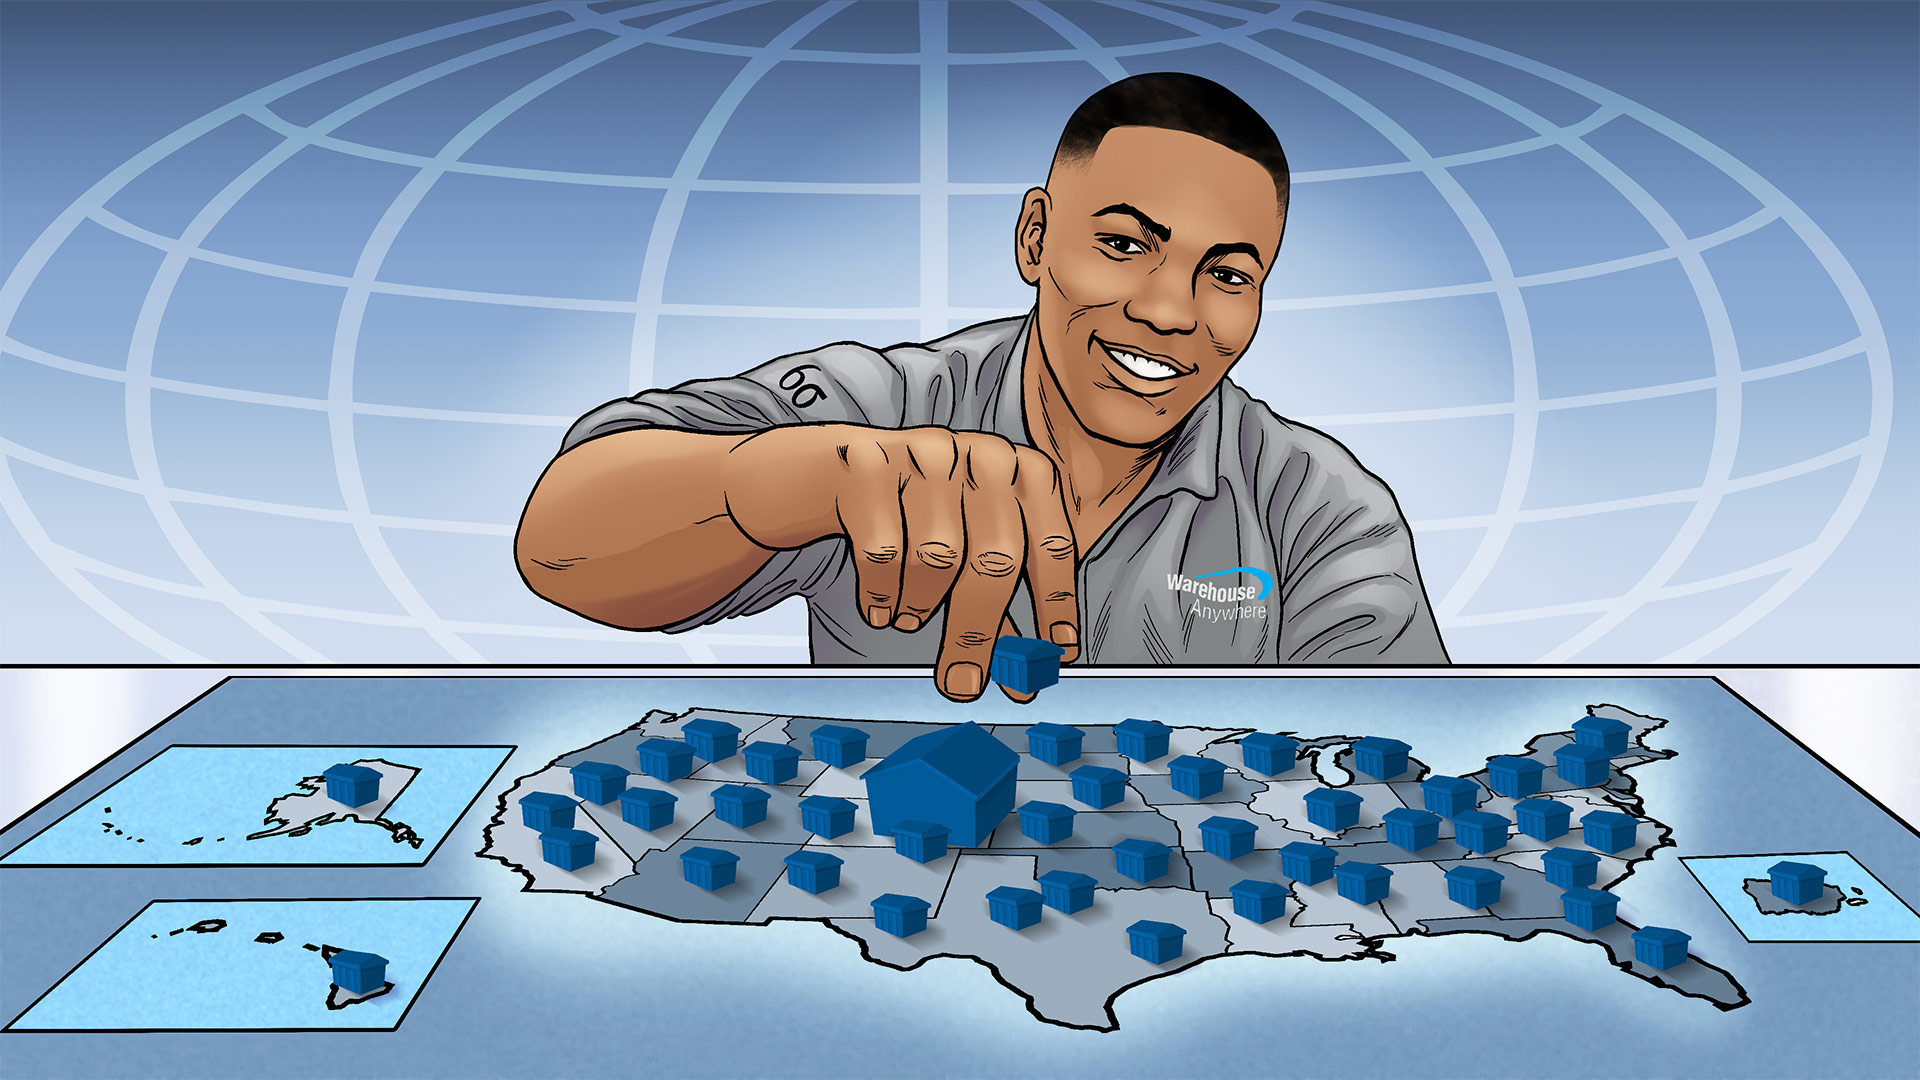 Chris moving decentralized warehouses and placing them strategically on a map of the US.